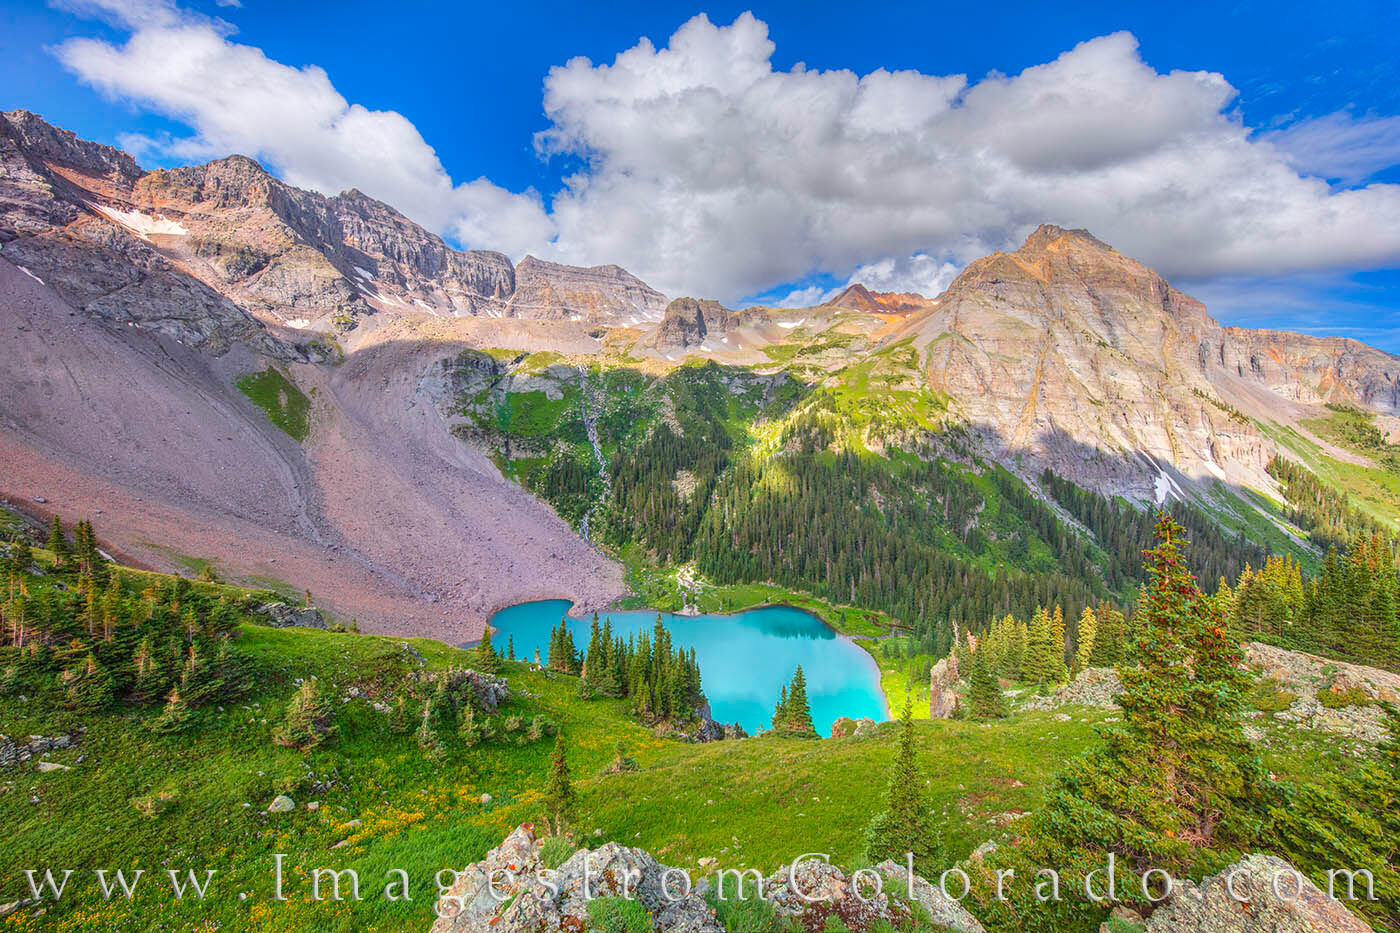 Not far from Ouray, the Blue Lakes Trail offers some of the best views in Colorado. Here, the Lower Blue Lake, turqoise from...